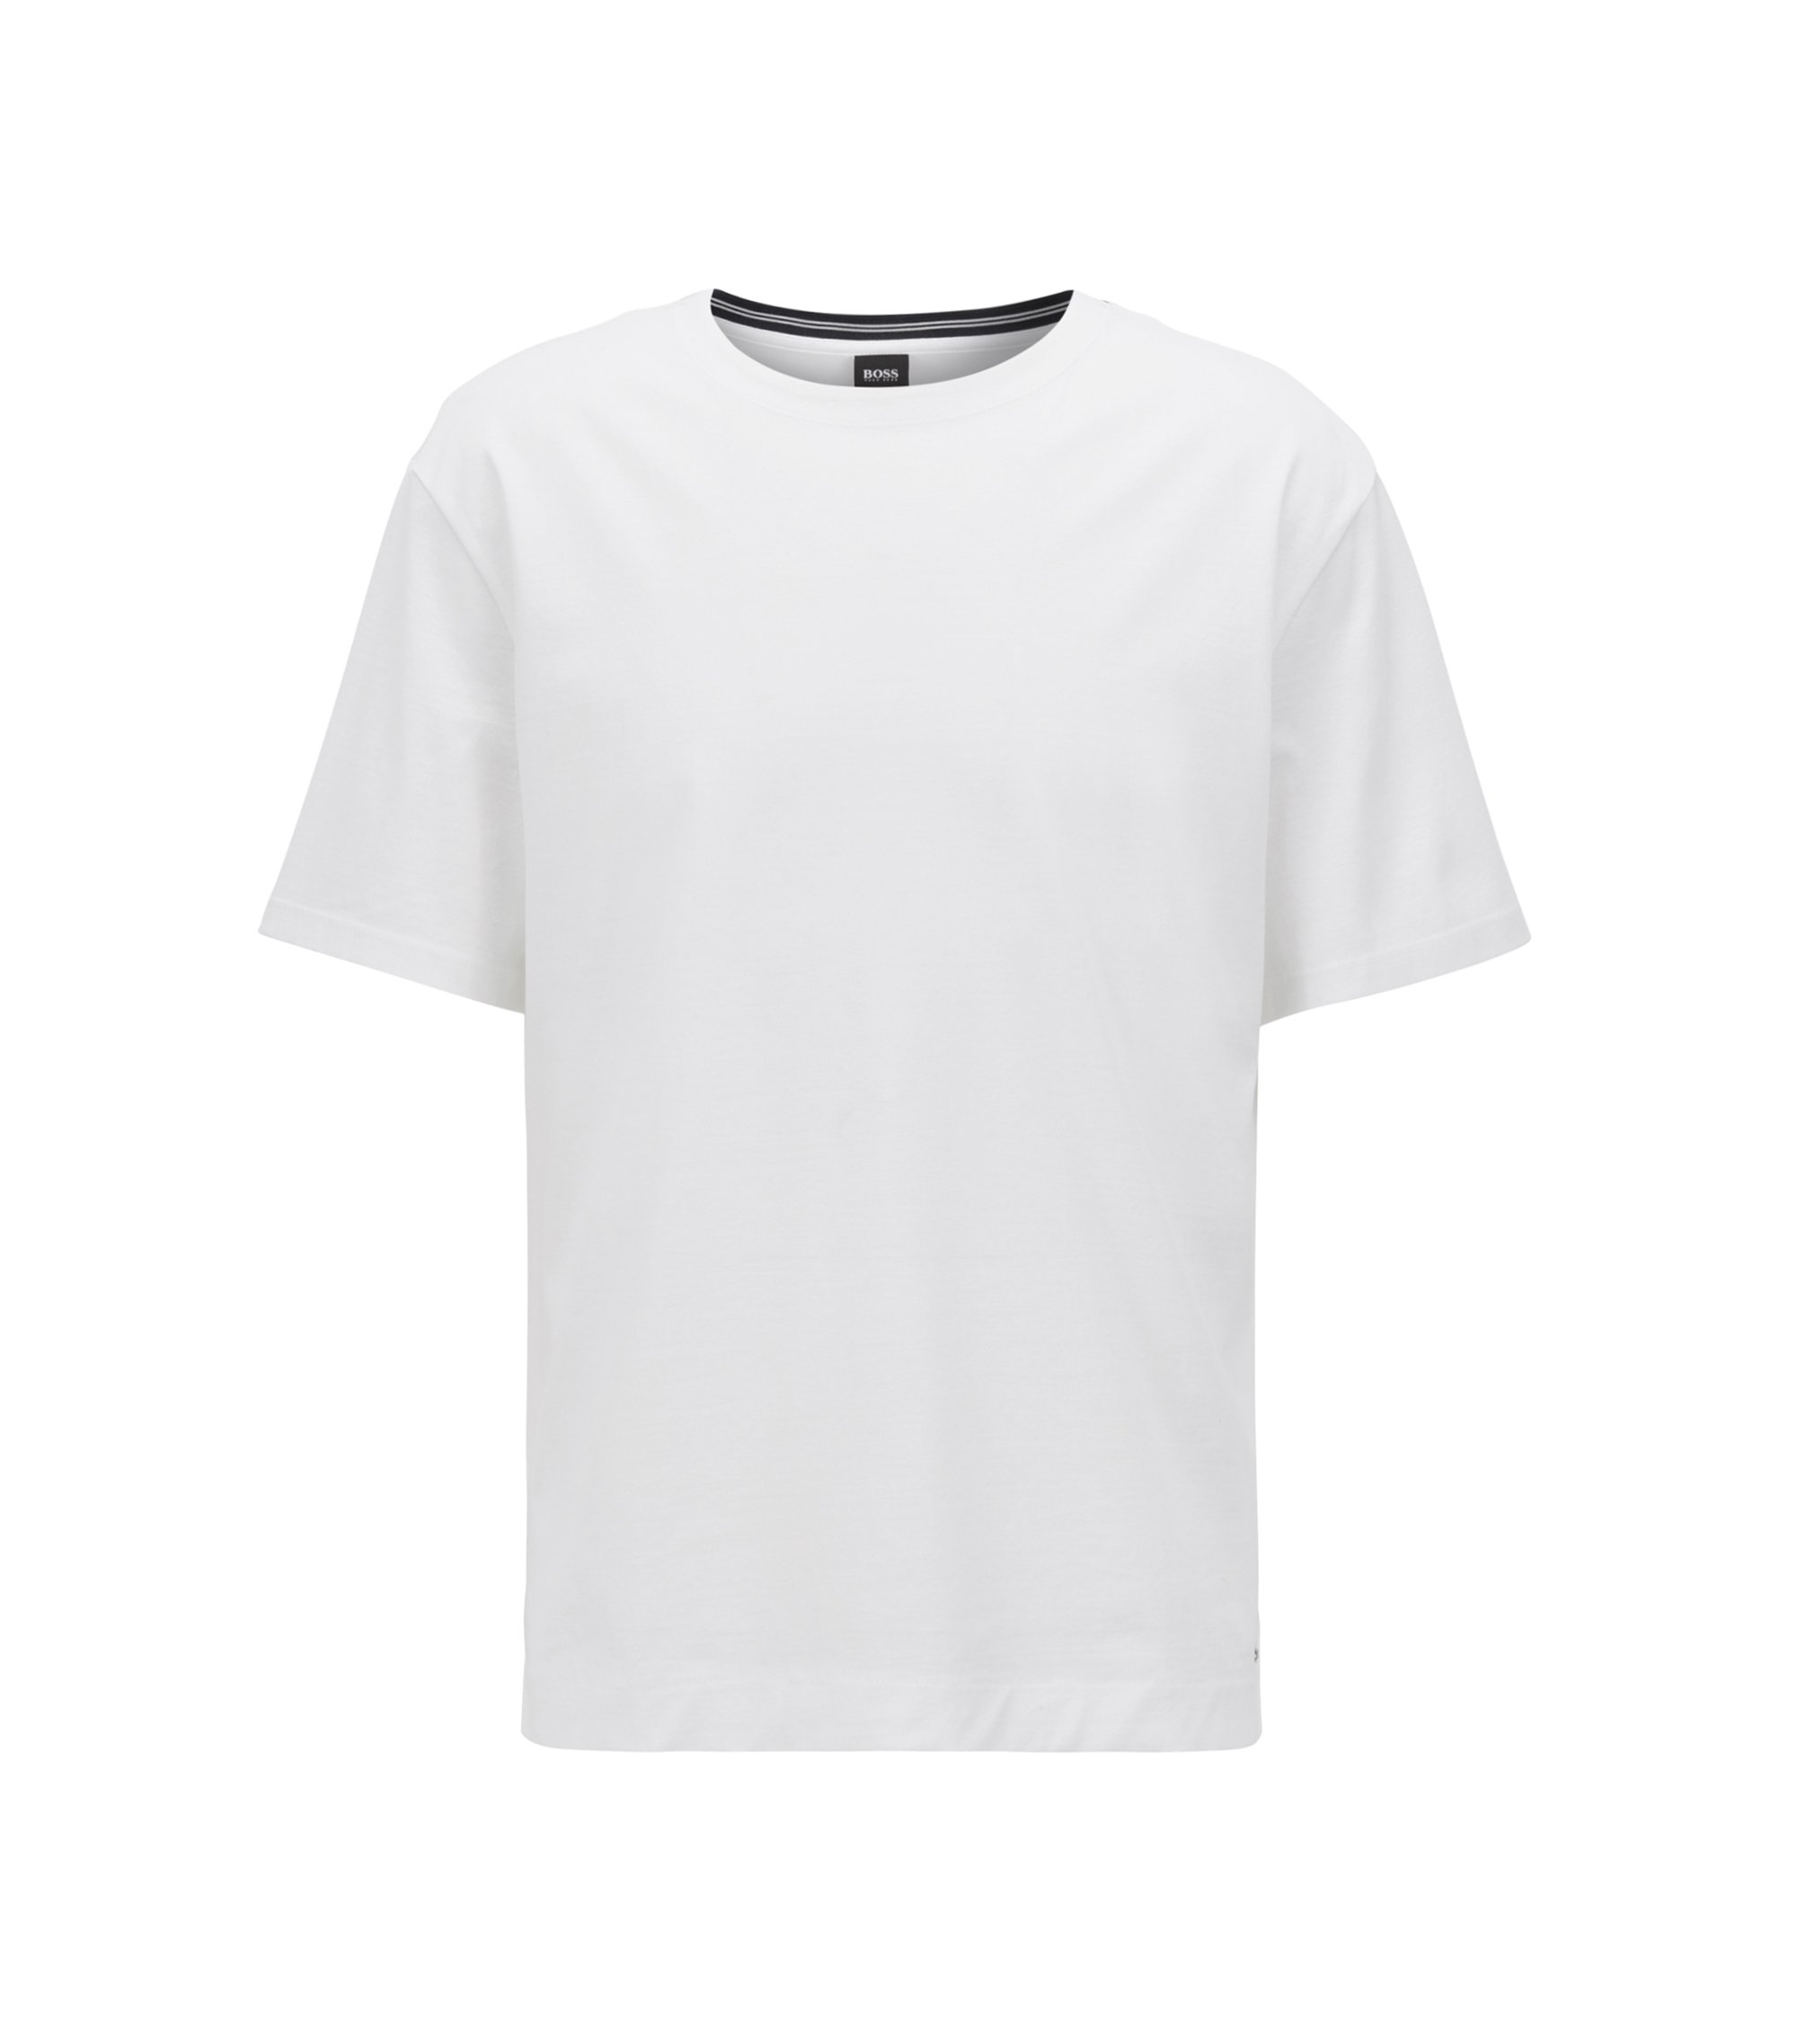 Mercerized-cotton T-shirt with contrast collar band, White